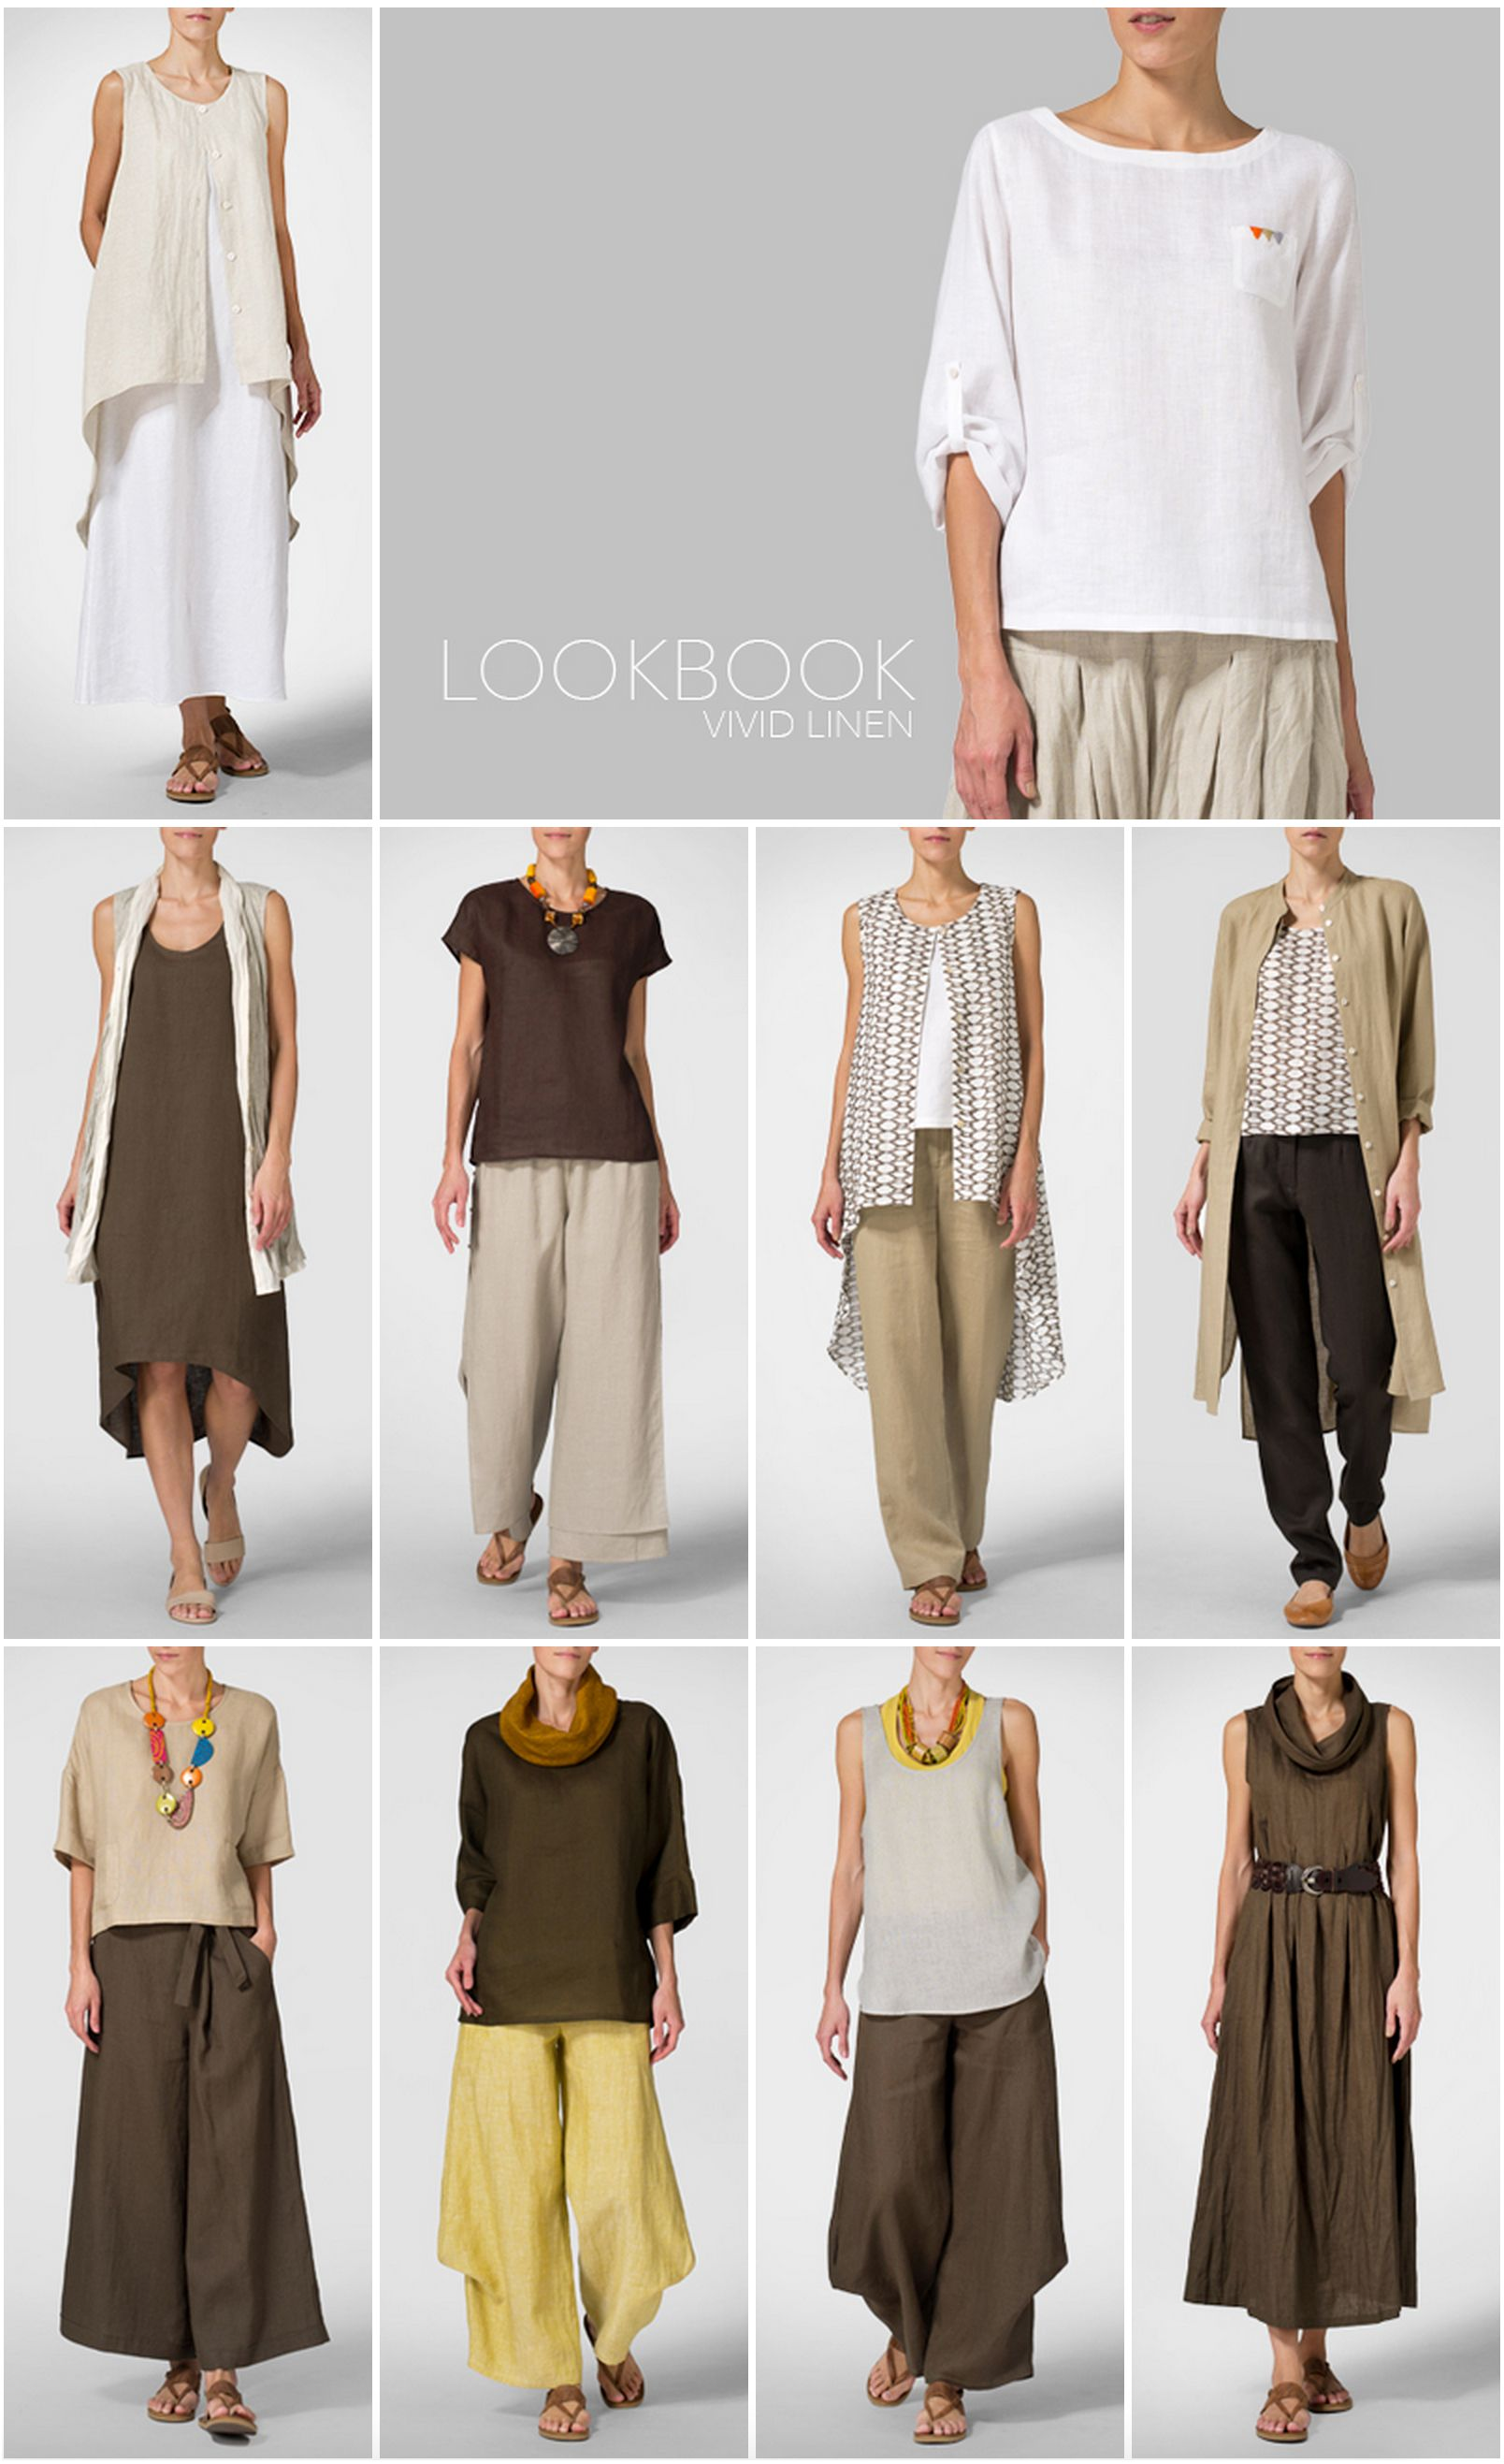 Vivid Linen Clothing Lookbook Clothes Outfit Fashion